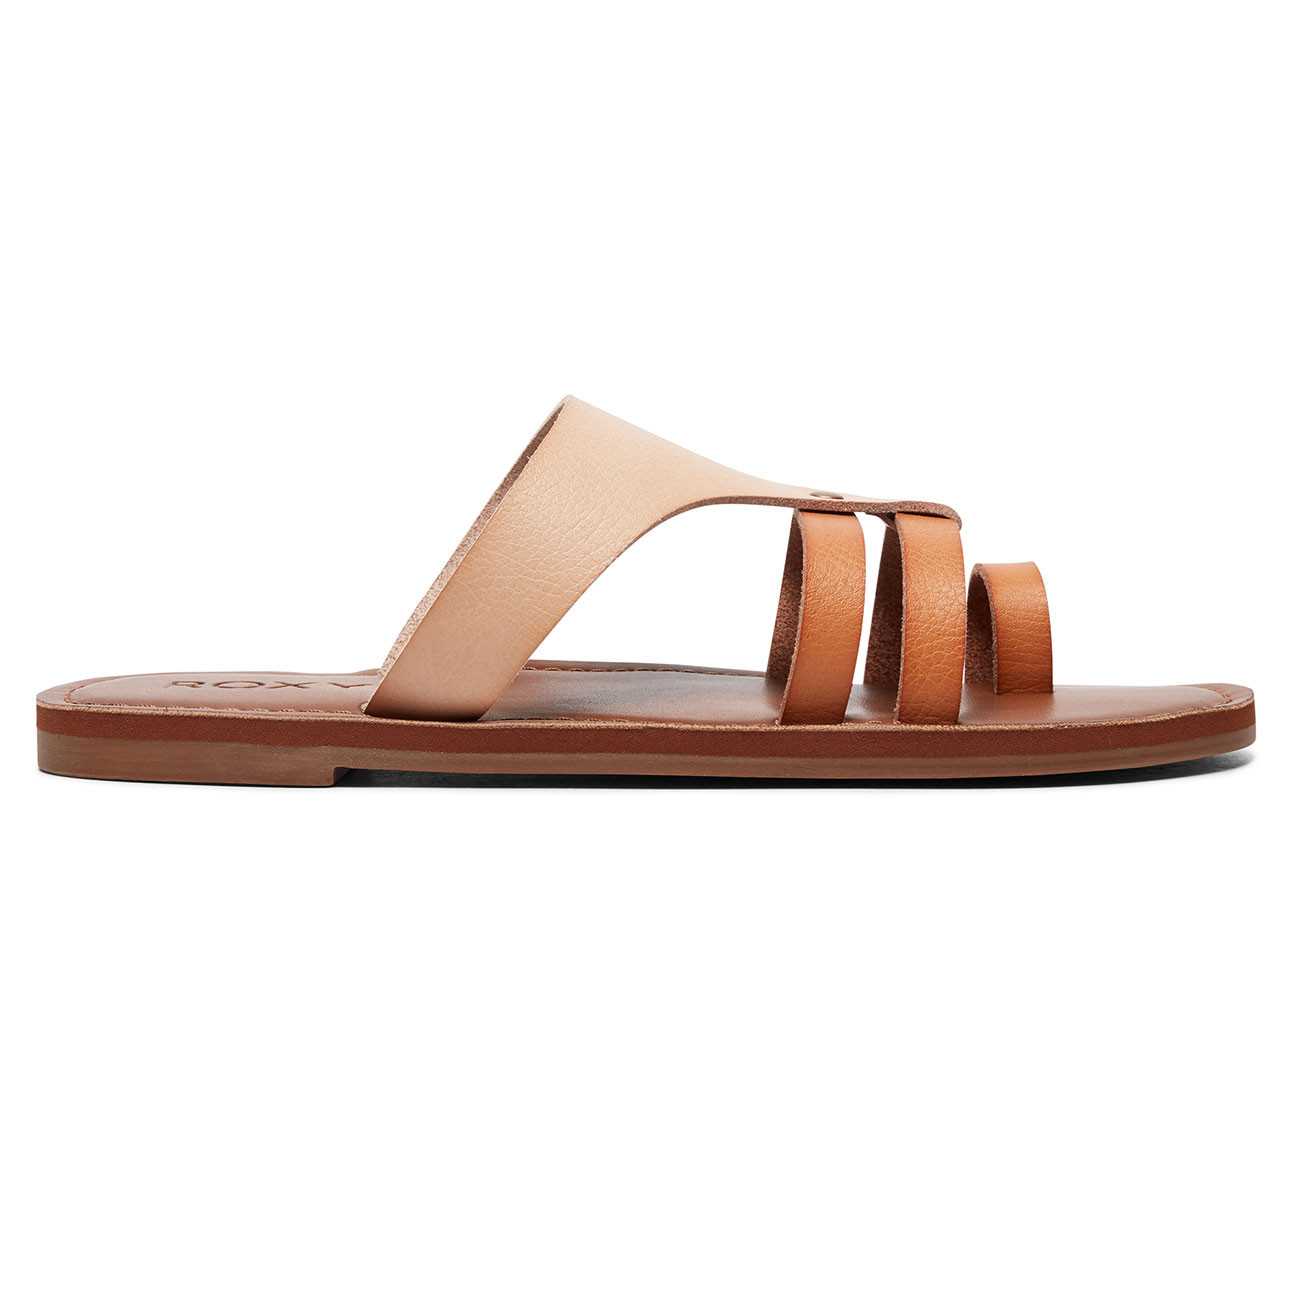 2b2ce1f756 Sandals Roxy Pauline tan